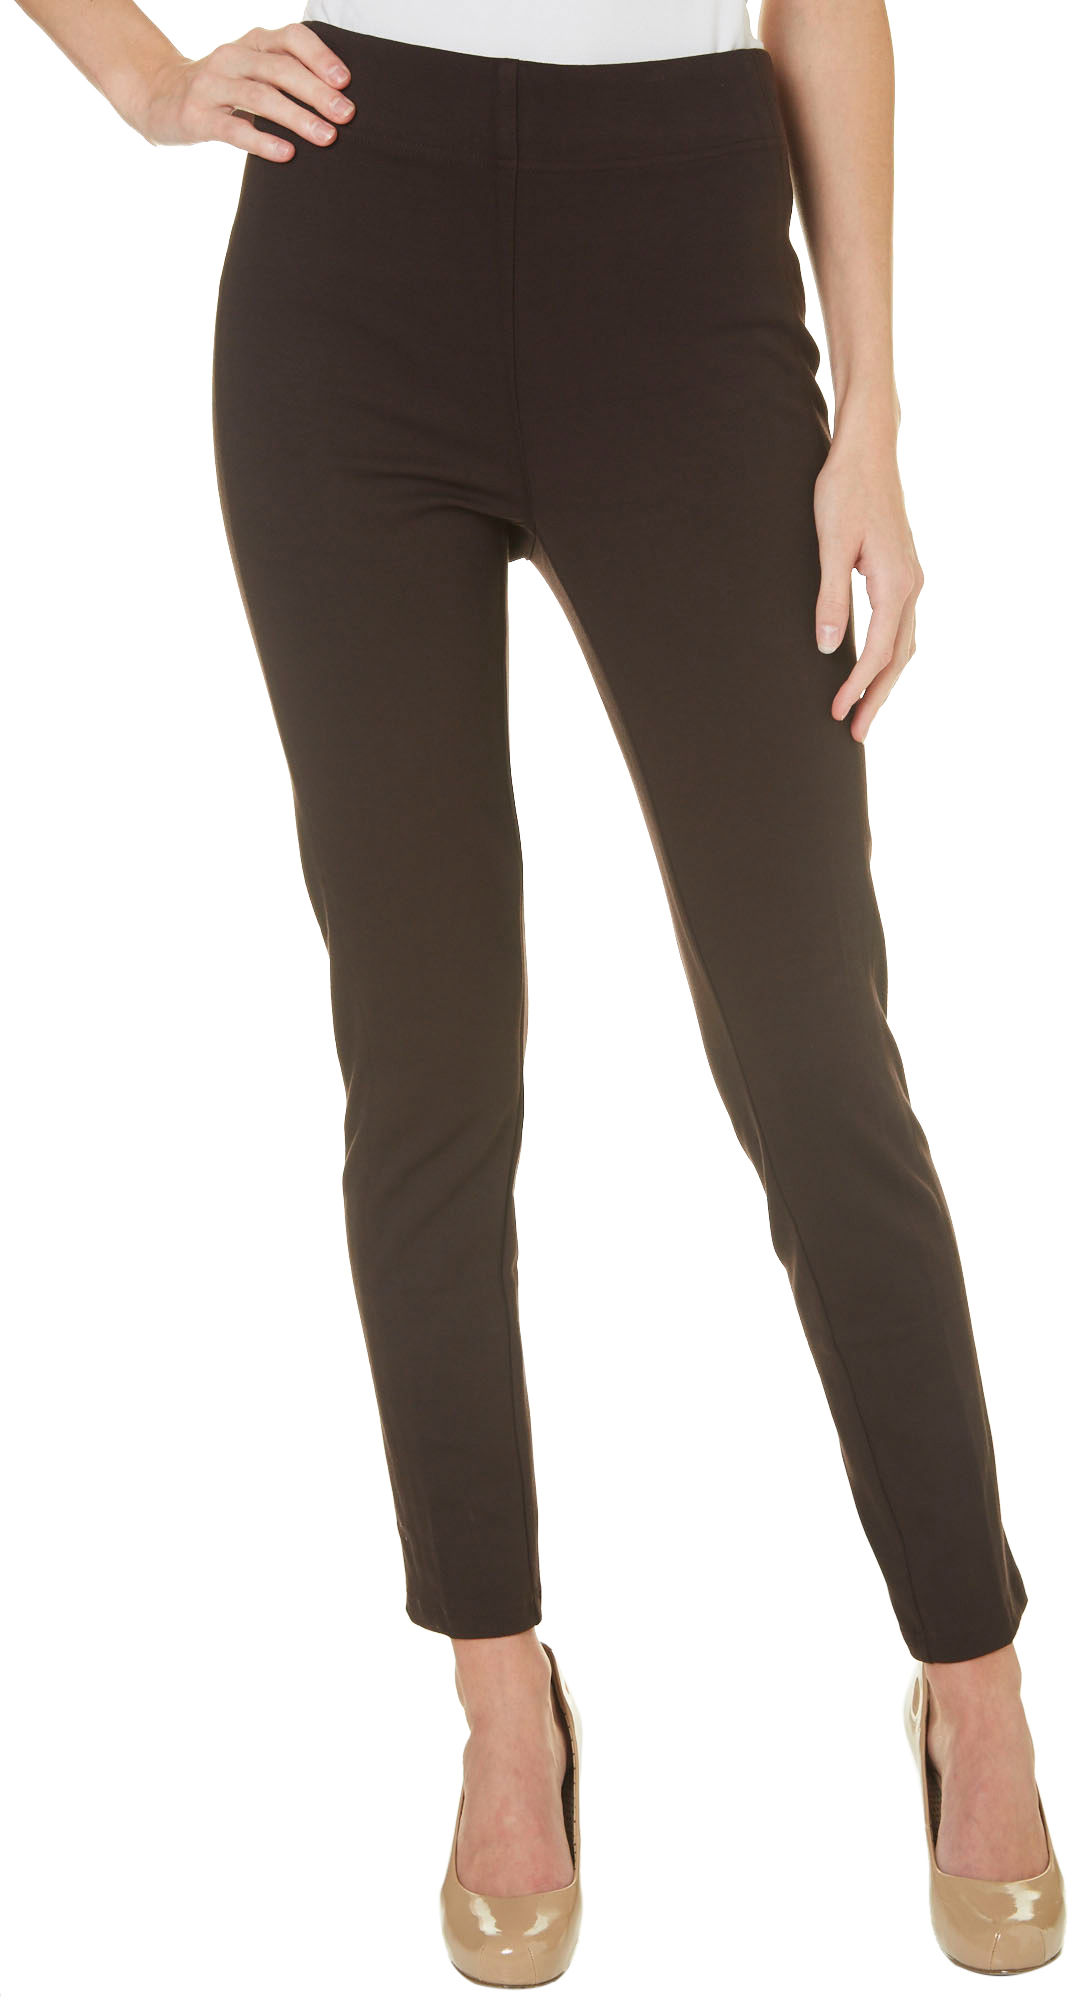 Free shipping BOTH ways on pants womens pull on, from our vast selection of styles. Fast delivery, and 24/7/ real-person service with a smile. Click or call